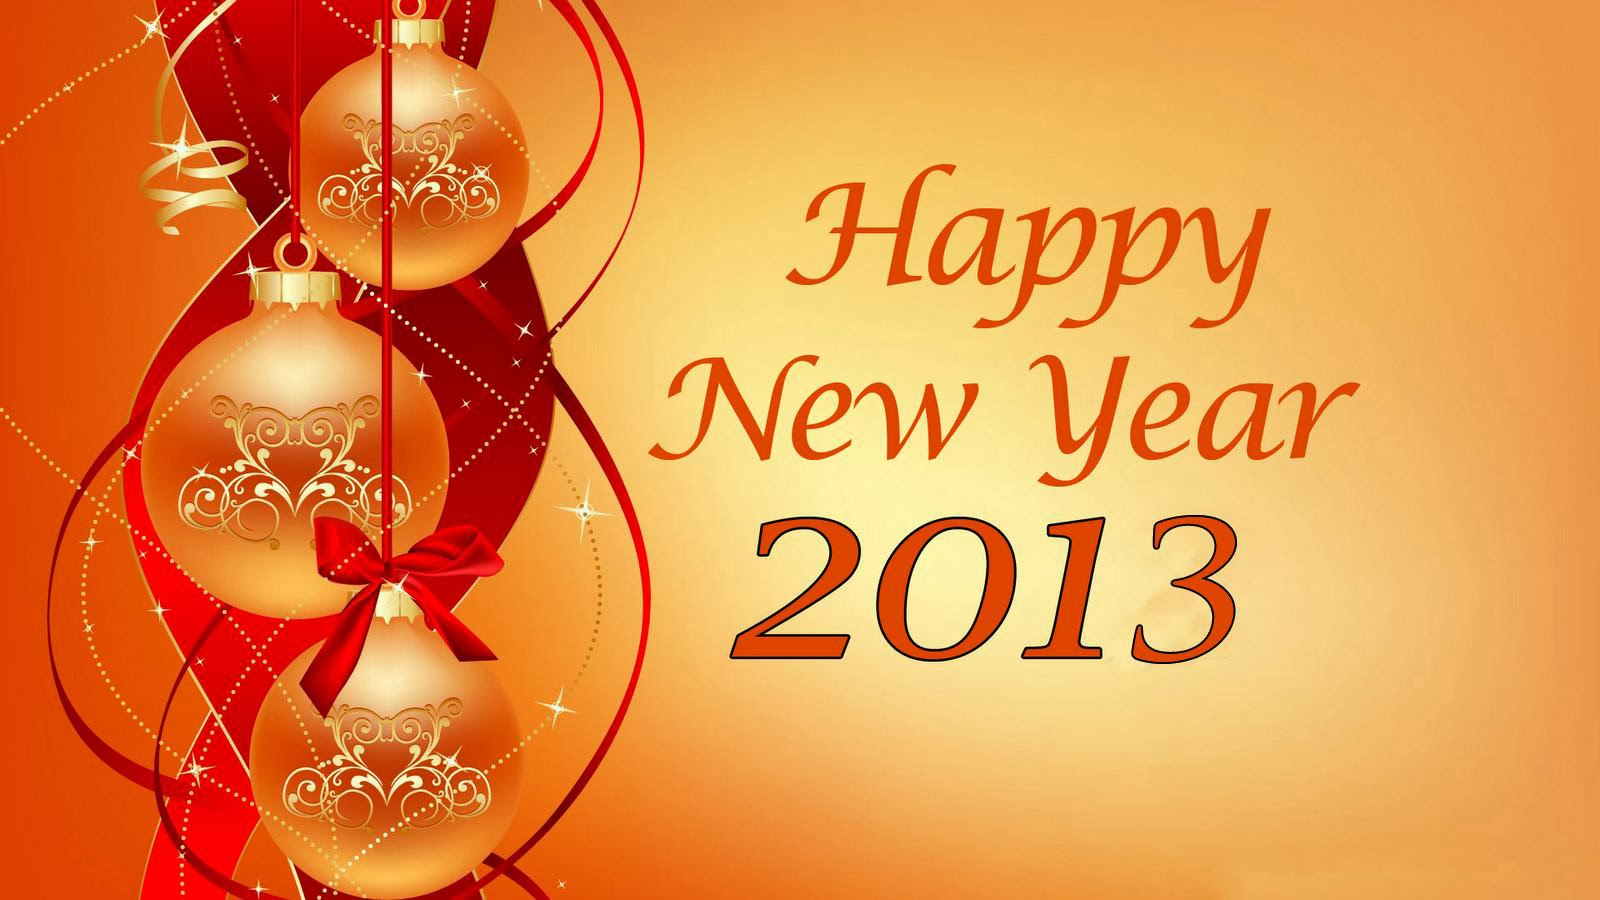 Free online greeting cards animated cards ecards postcards happy new year 2013 wishes wallpaper kristyandbryce Gallery